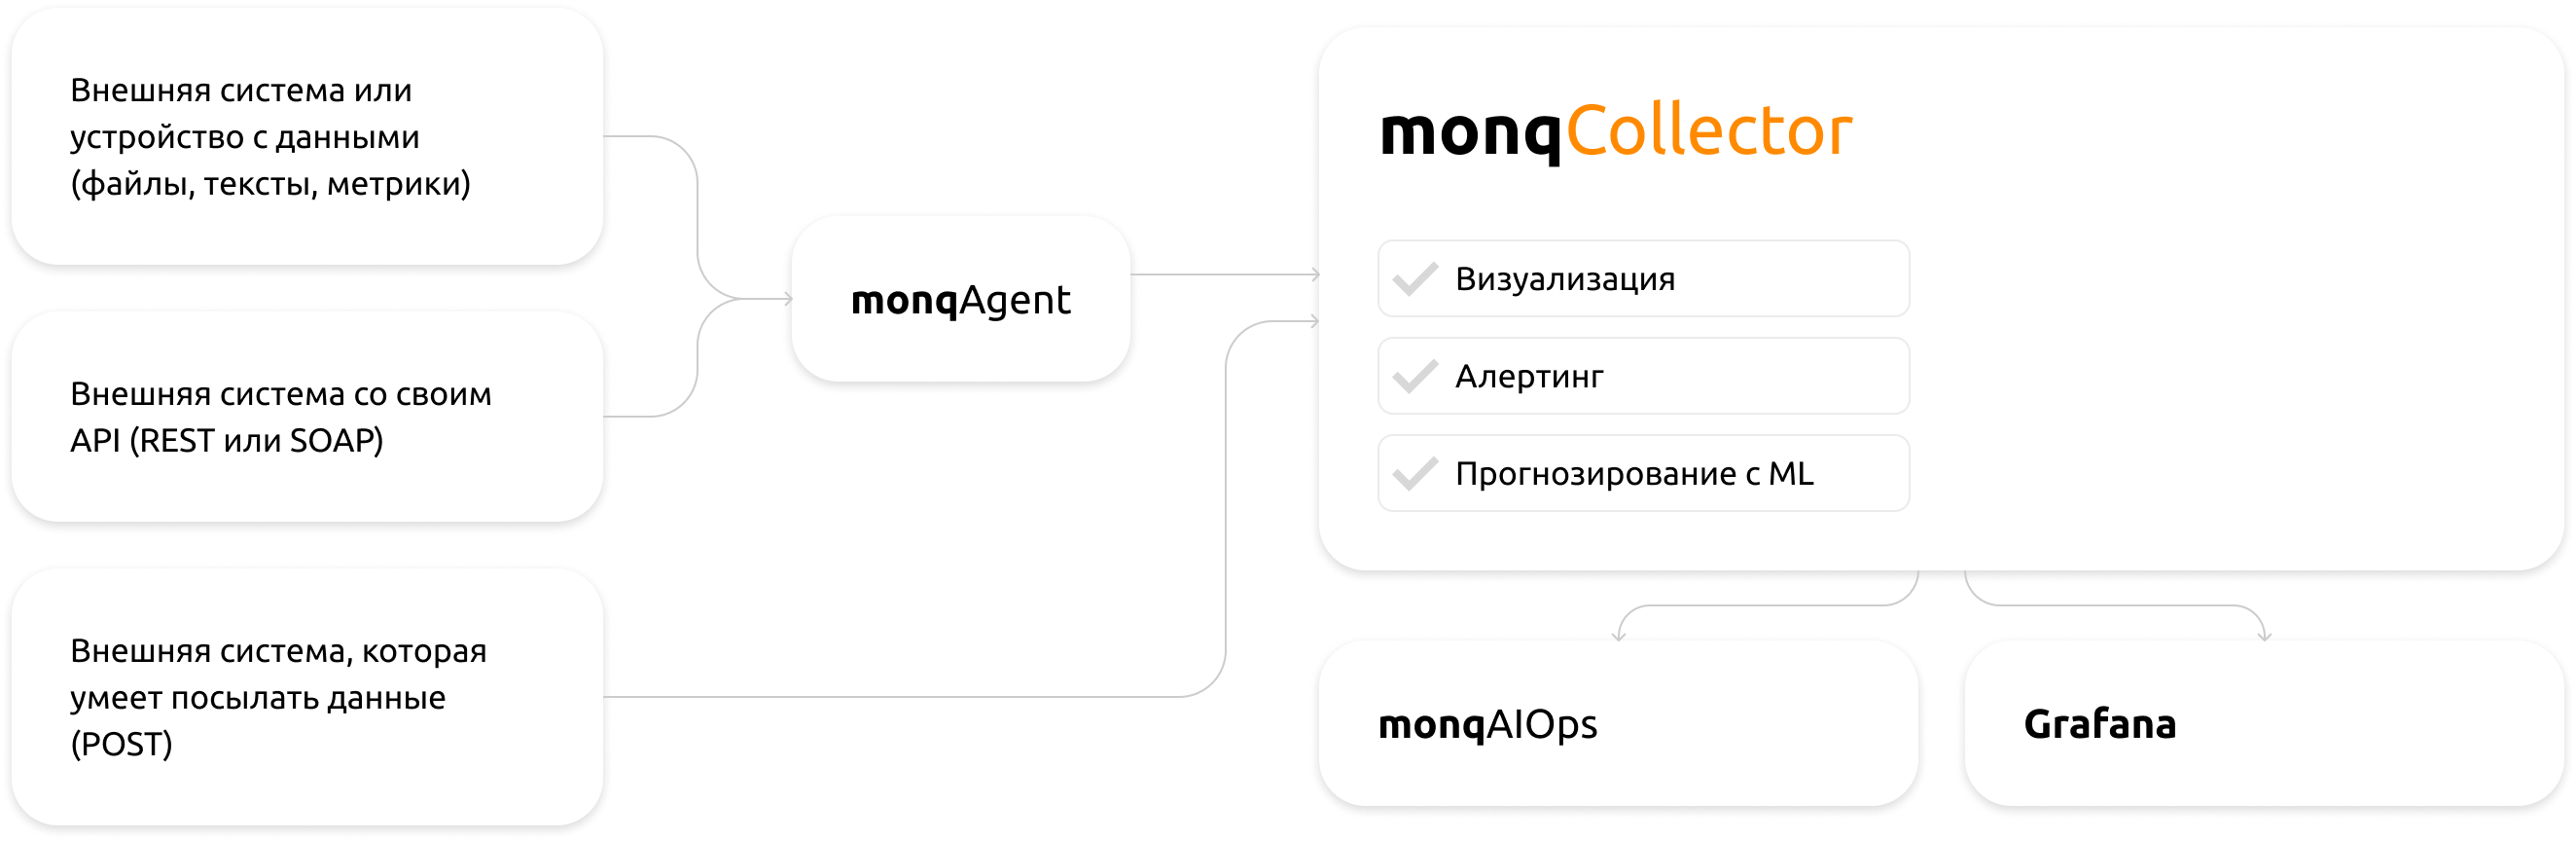 monq-collector